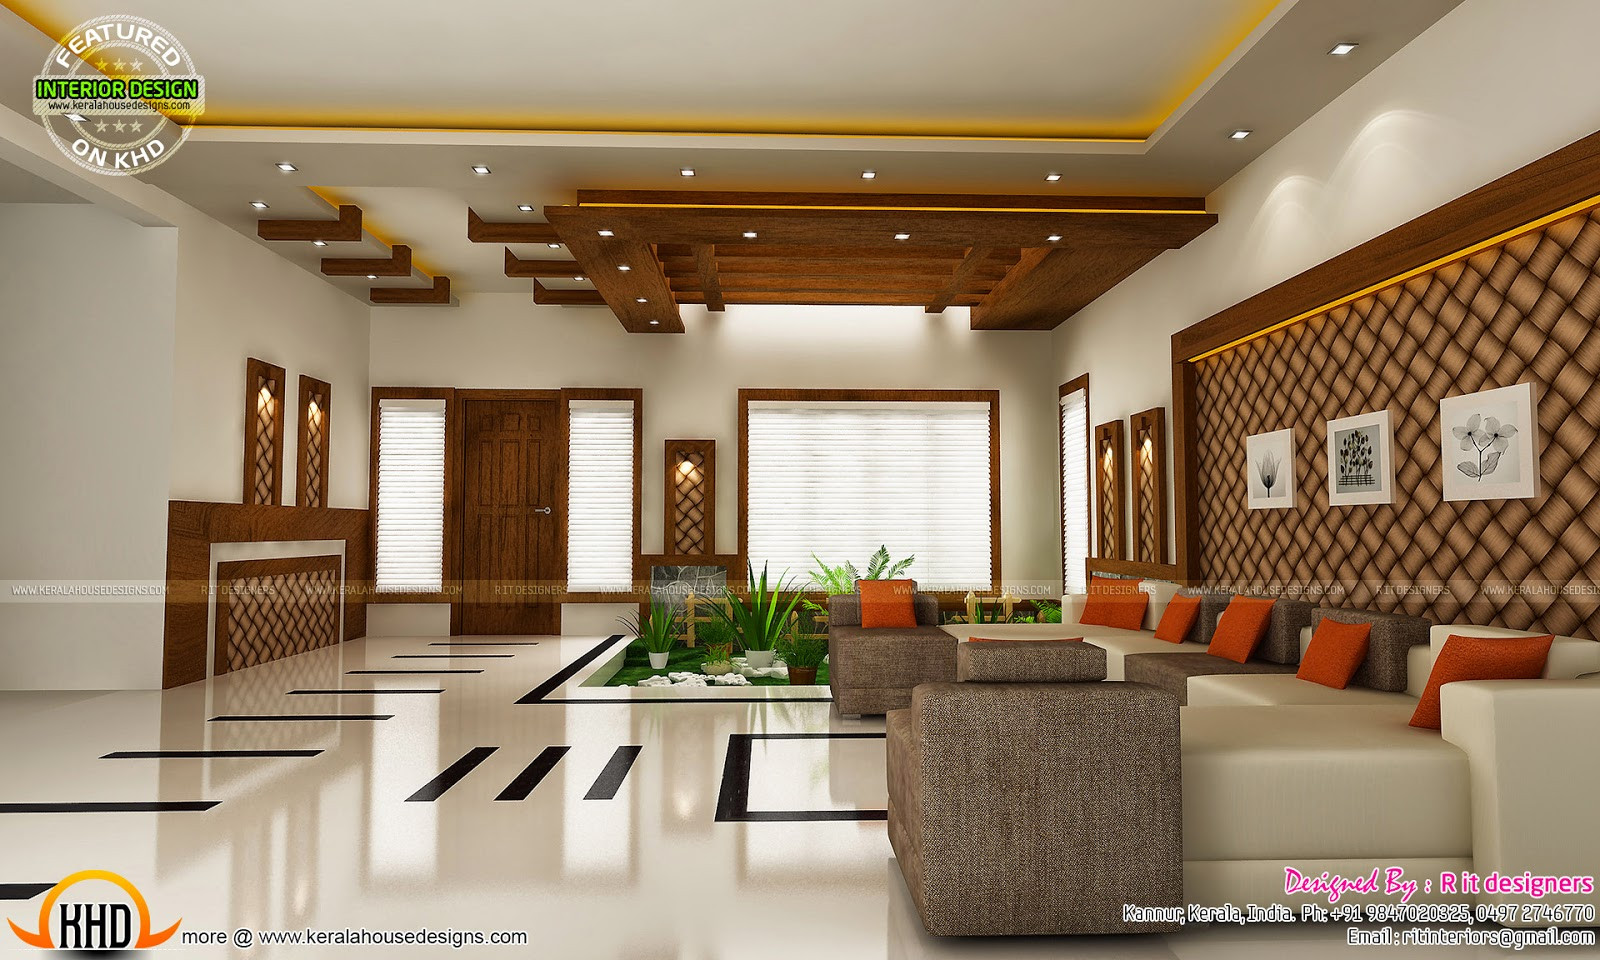 Modern and unique dining kitchen interior kerala home for New model house interior design